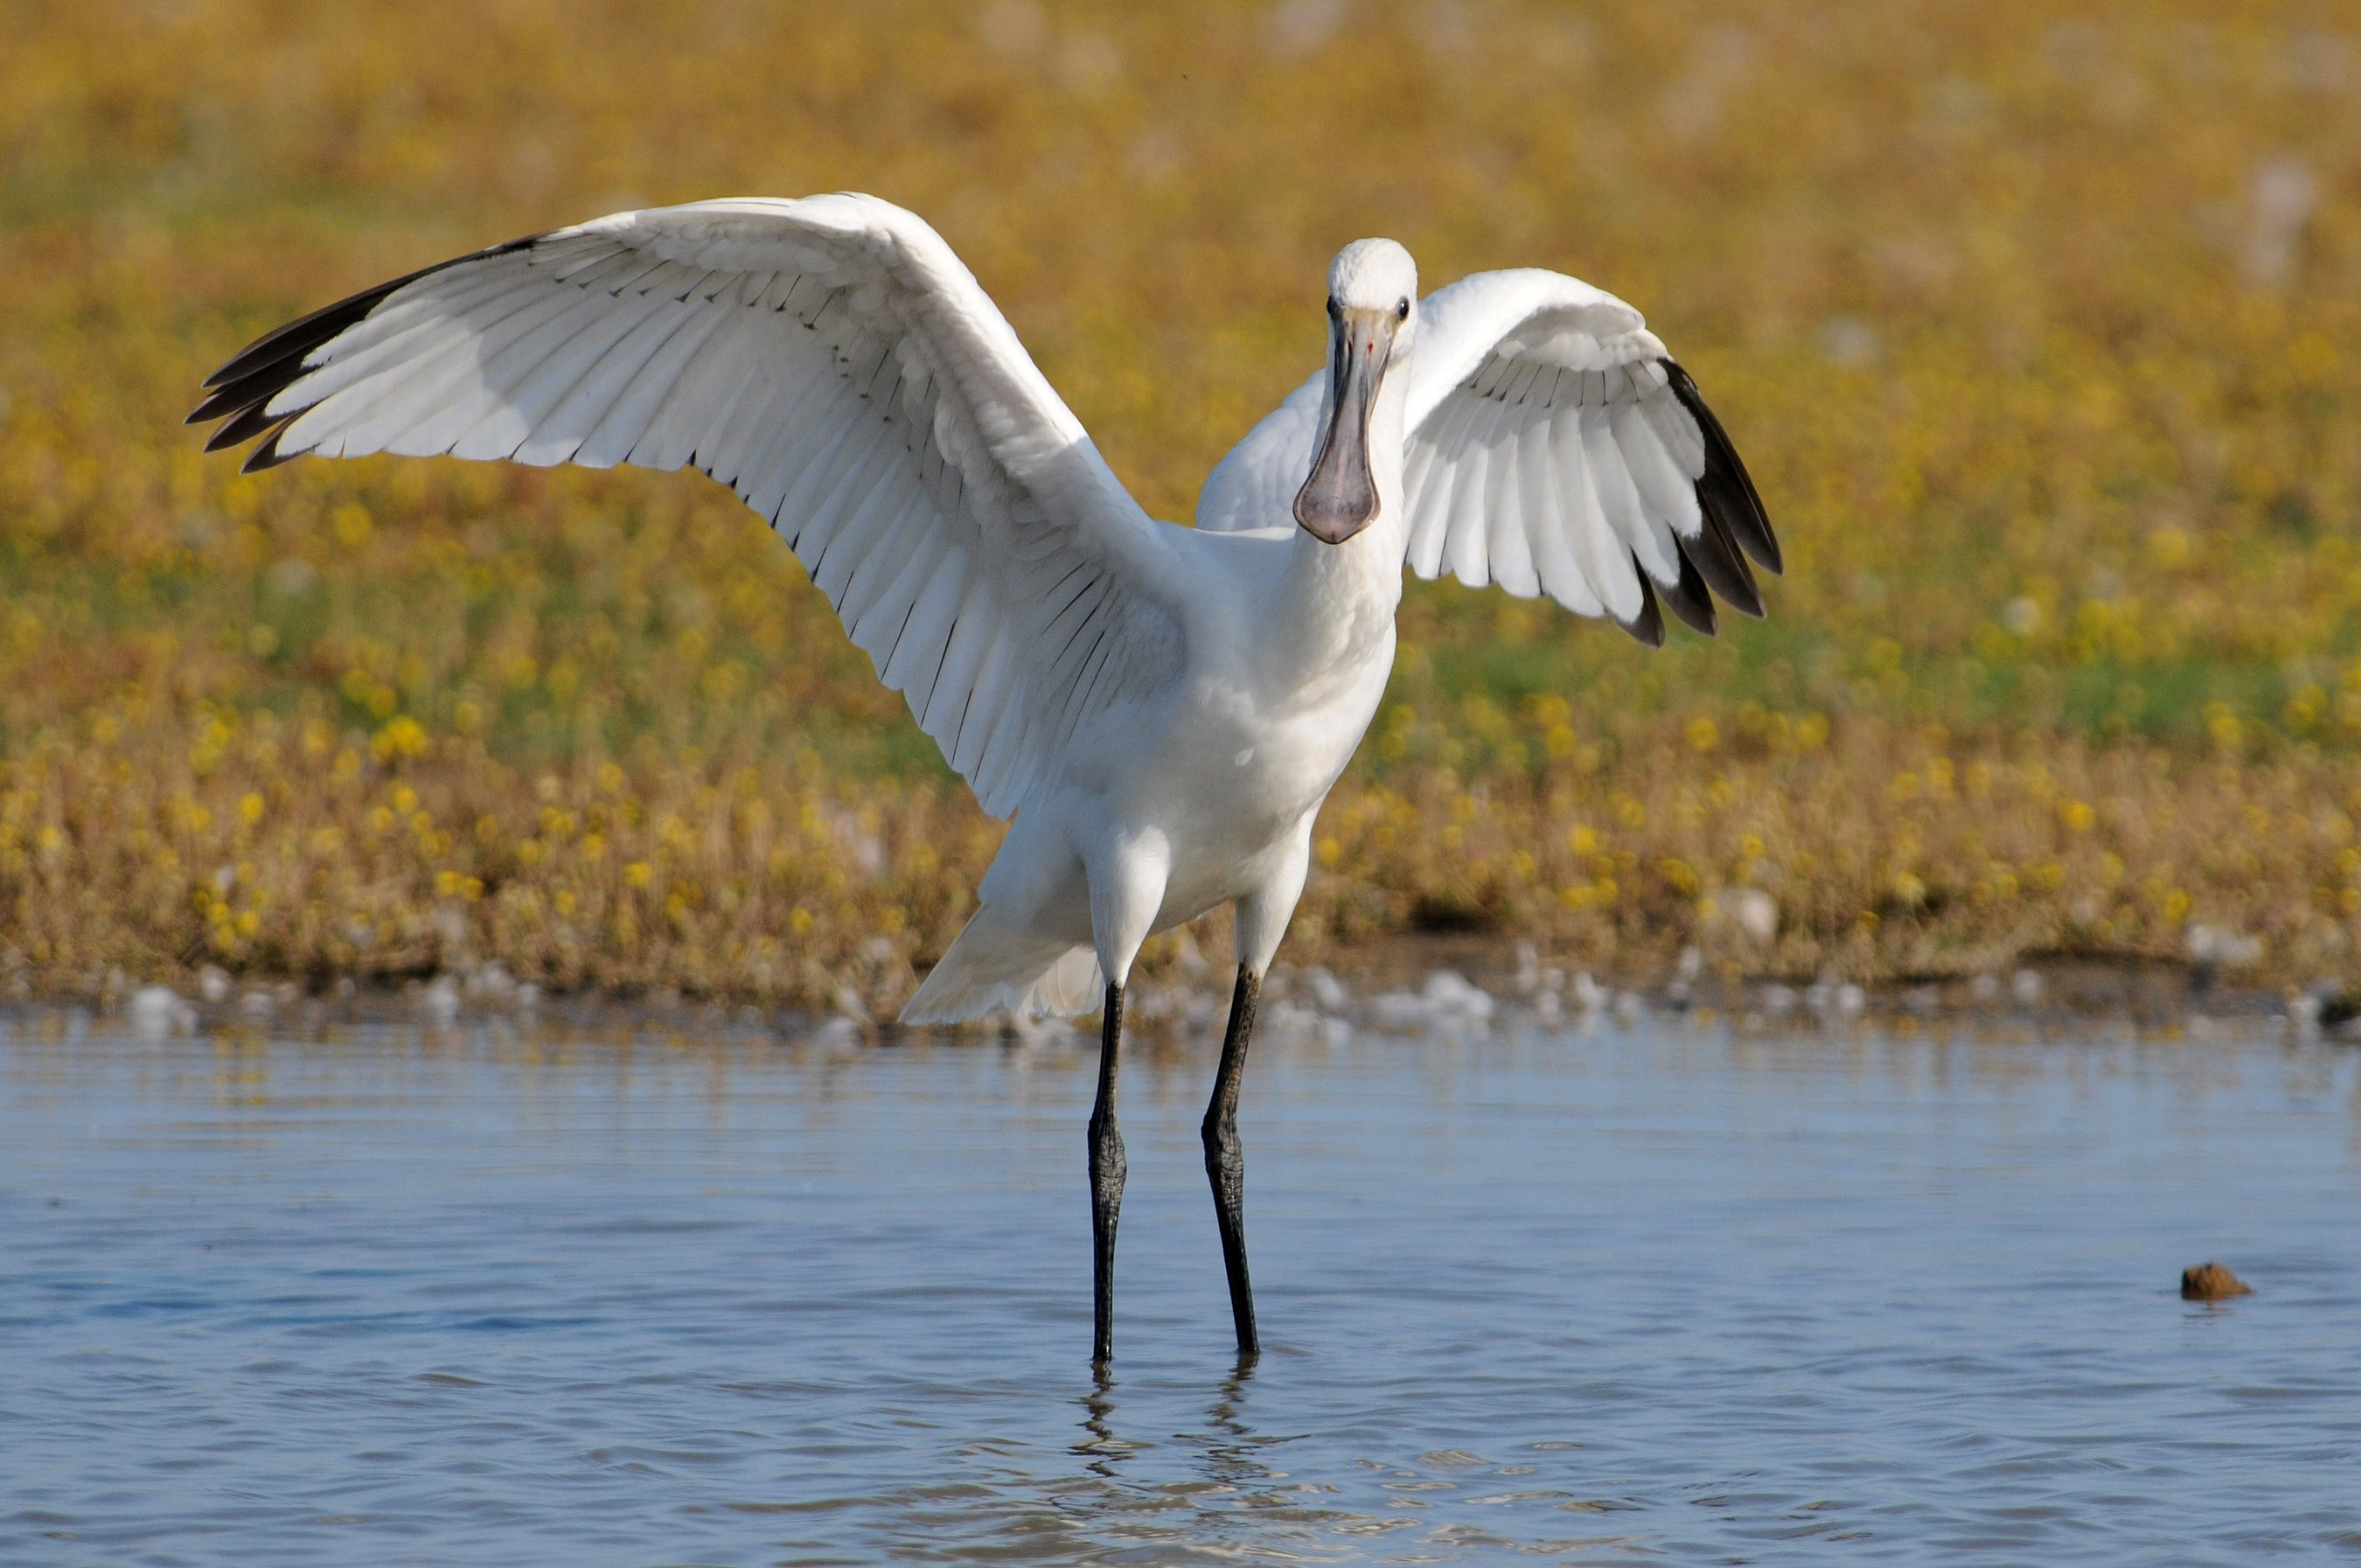 9 for 90: Spoonbill